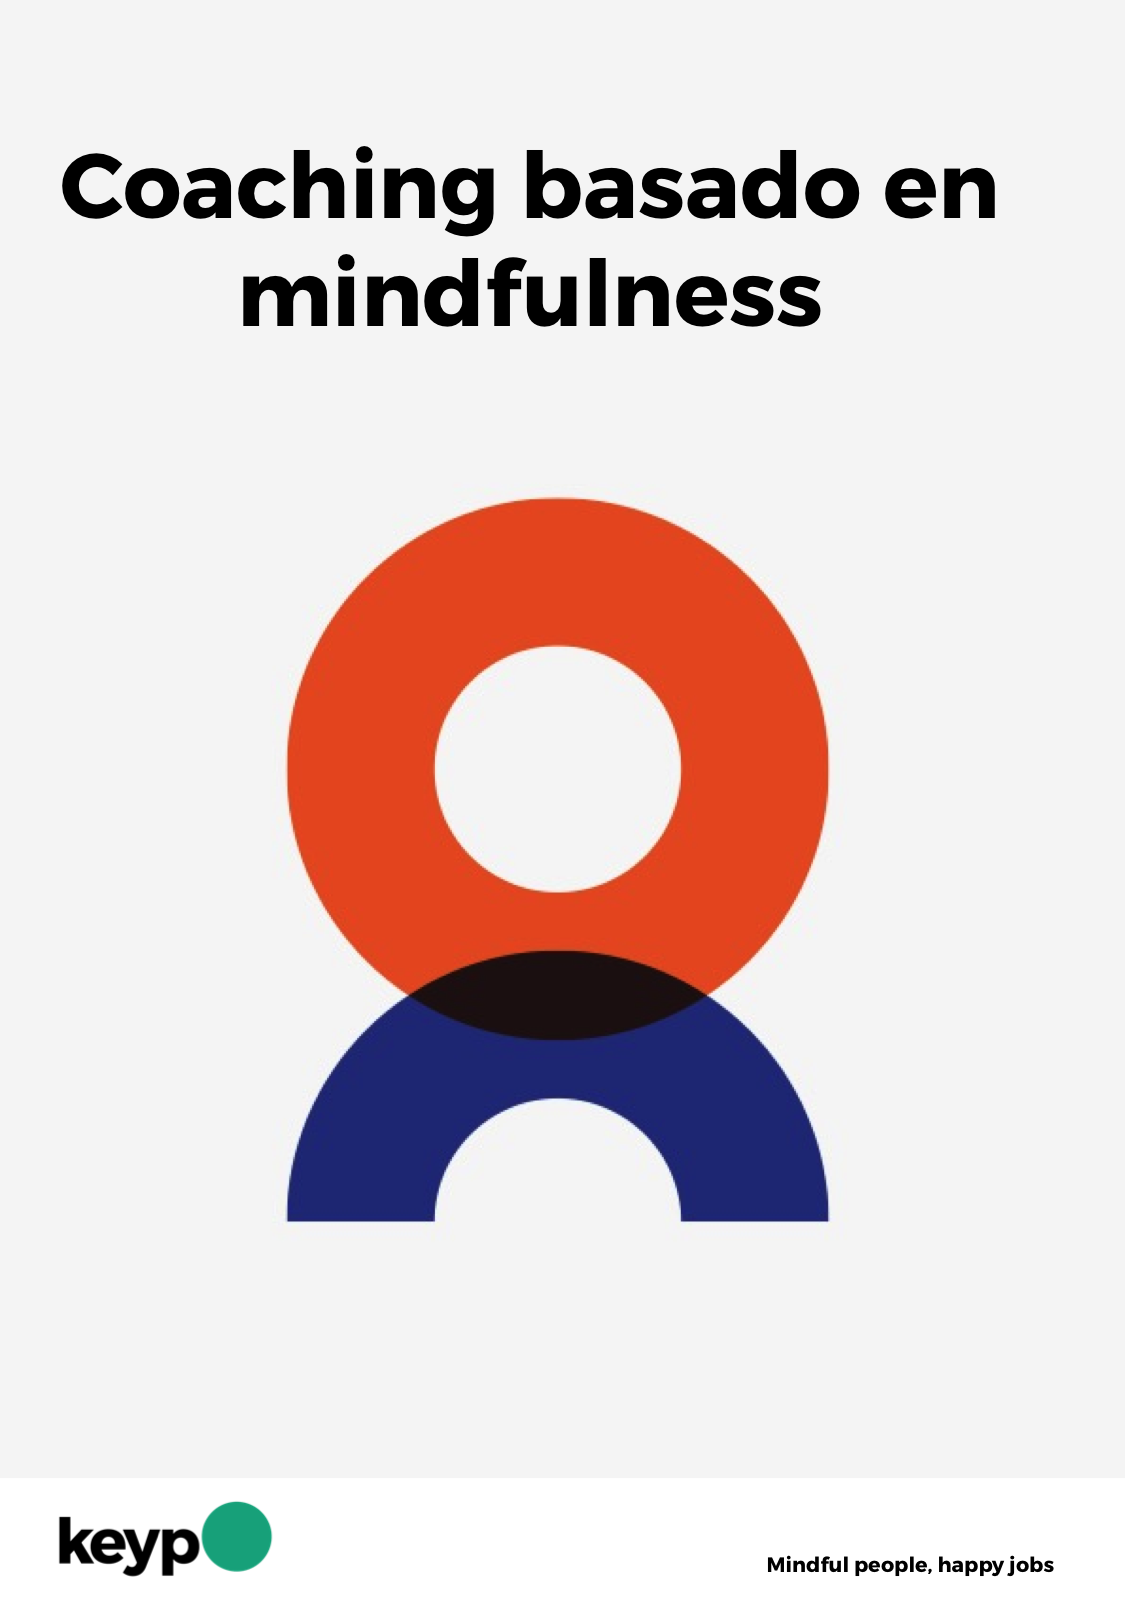 Keypo-part3-coaching basado mindfulness.png